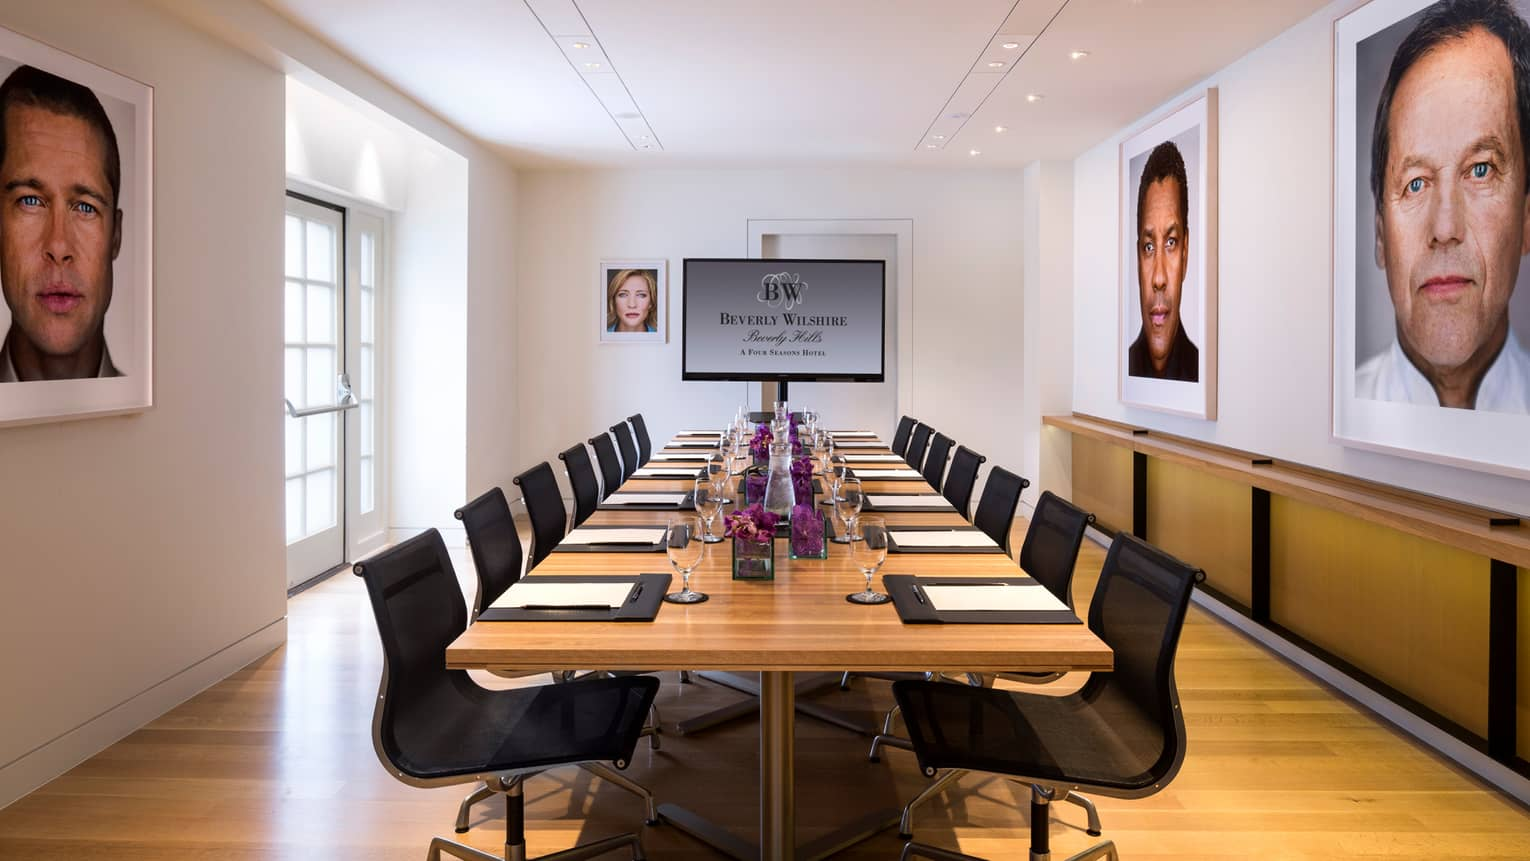 Petit Cut long meeting table, TV screen at end, framed prints of Hollywood stars